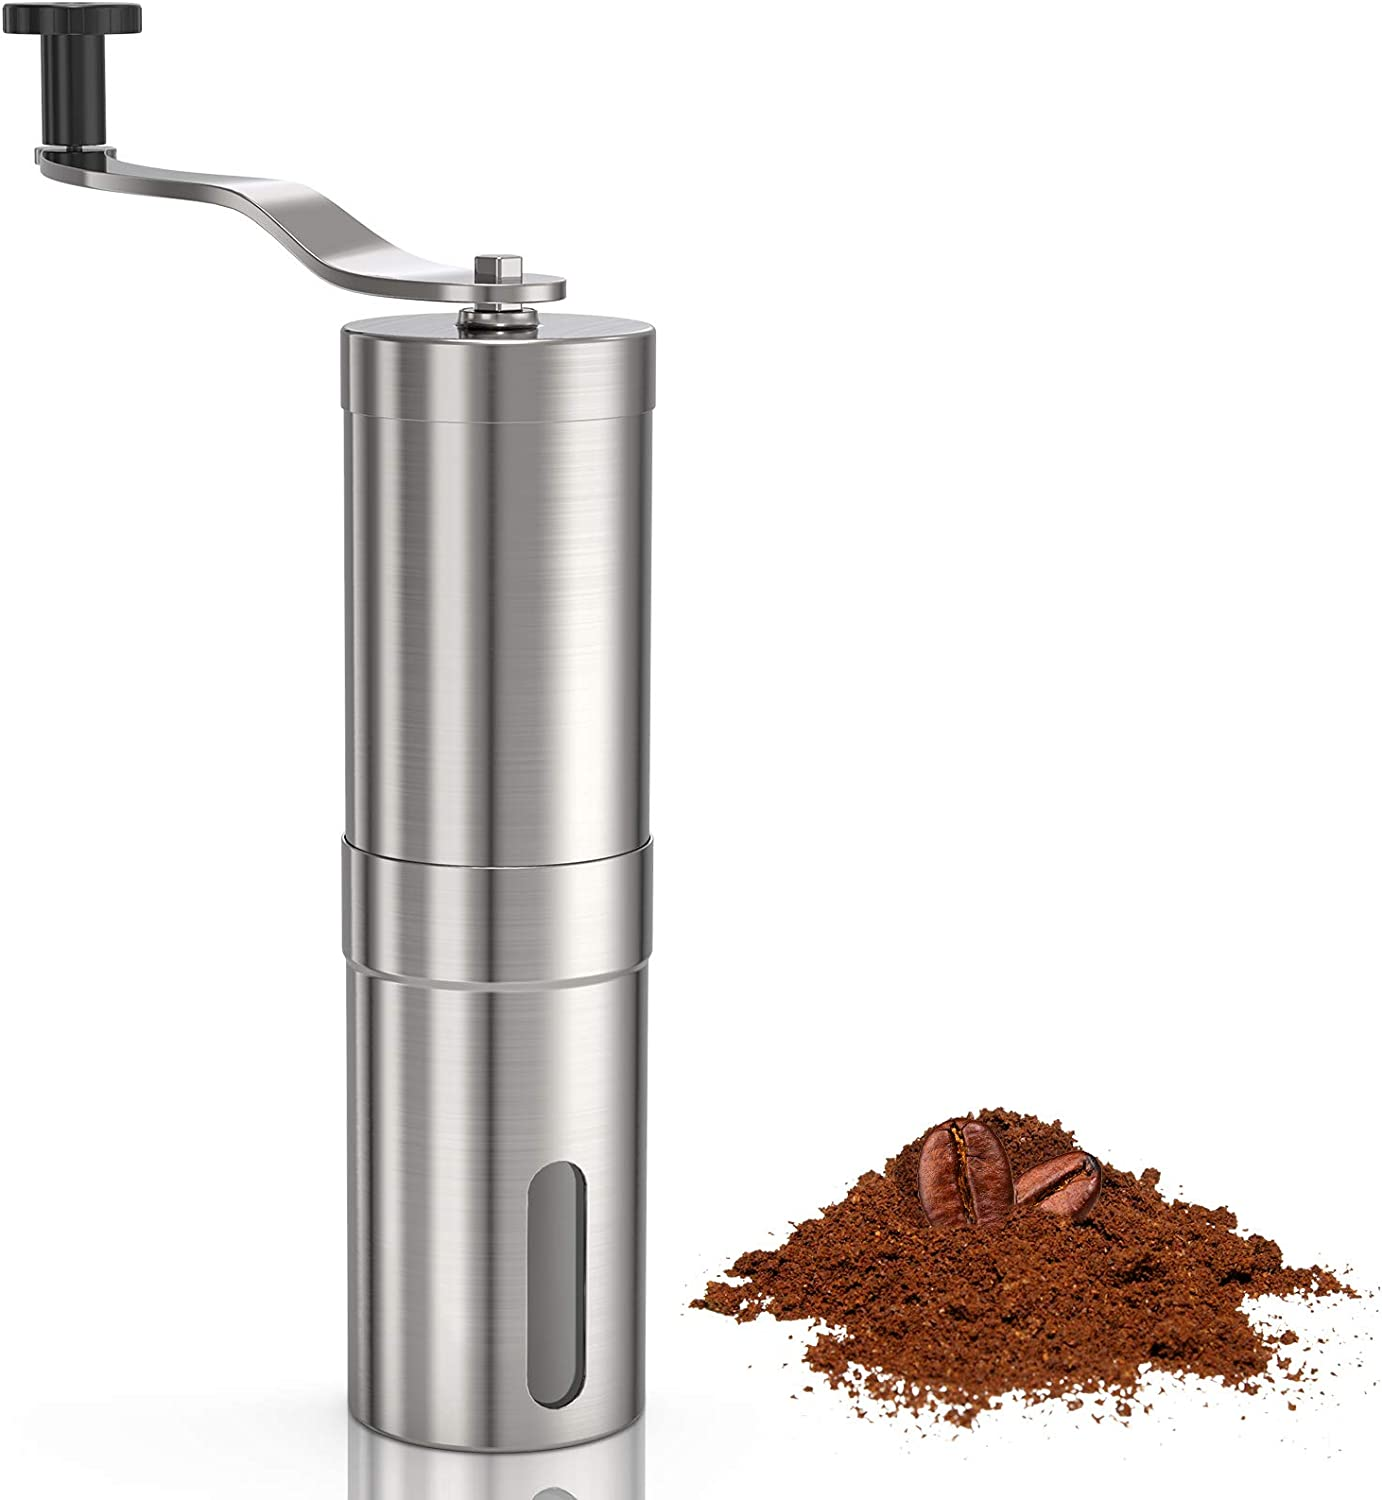 Yeaky Max 61% OFF Clearance SALE Limited time Manual Coffee Grinder Hand Burr Mill Conical Ceramic Held